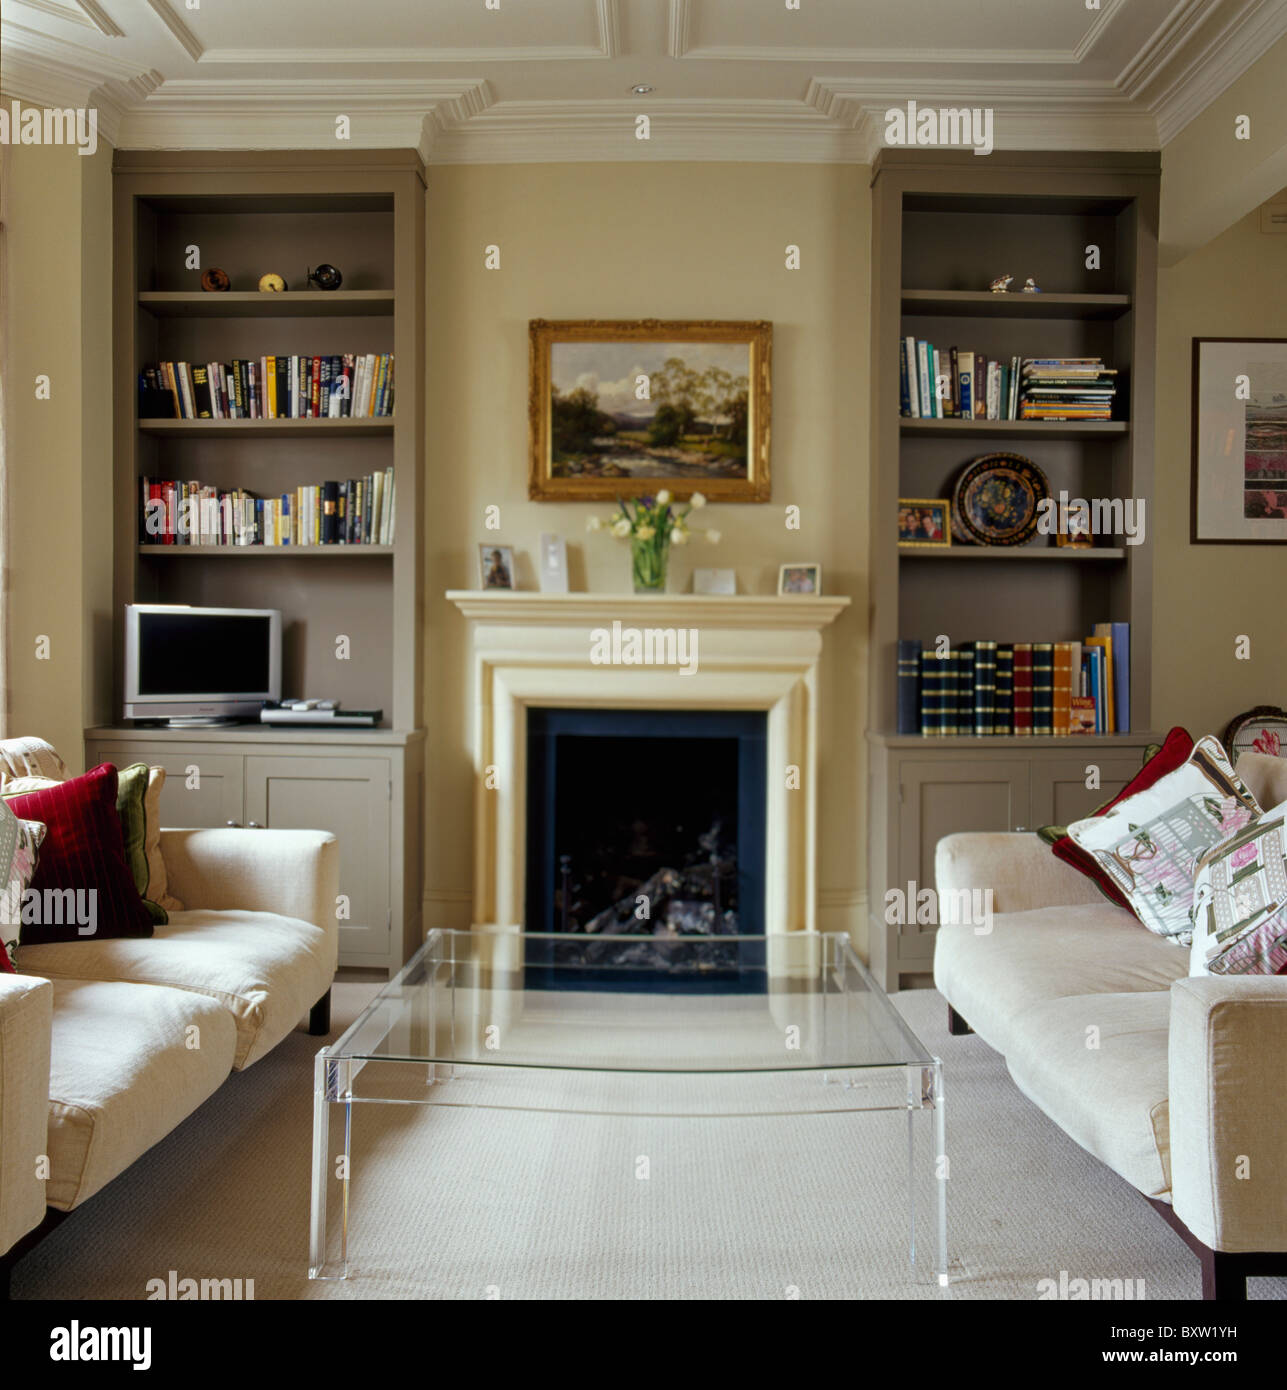 furniture ideas for living room alcoves restaurant abu dhabi modern perspex table and cream sofas in traditional with alcove shelves on either side of fireplace